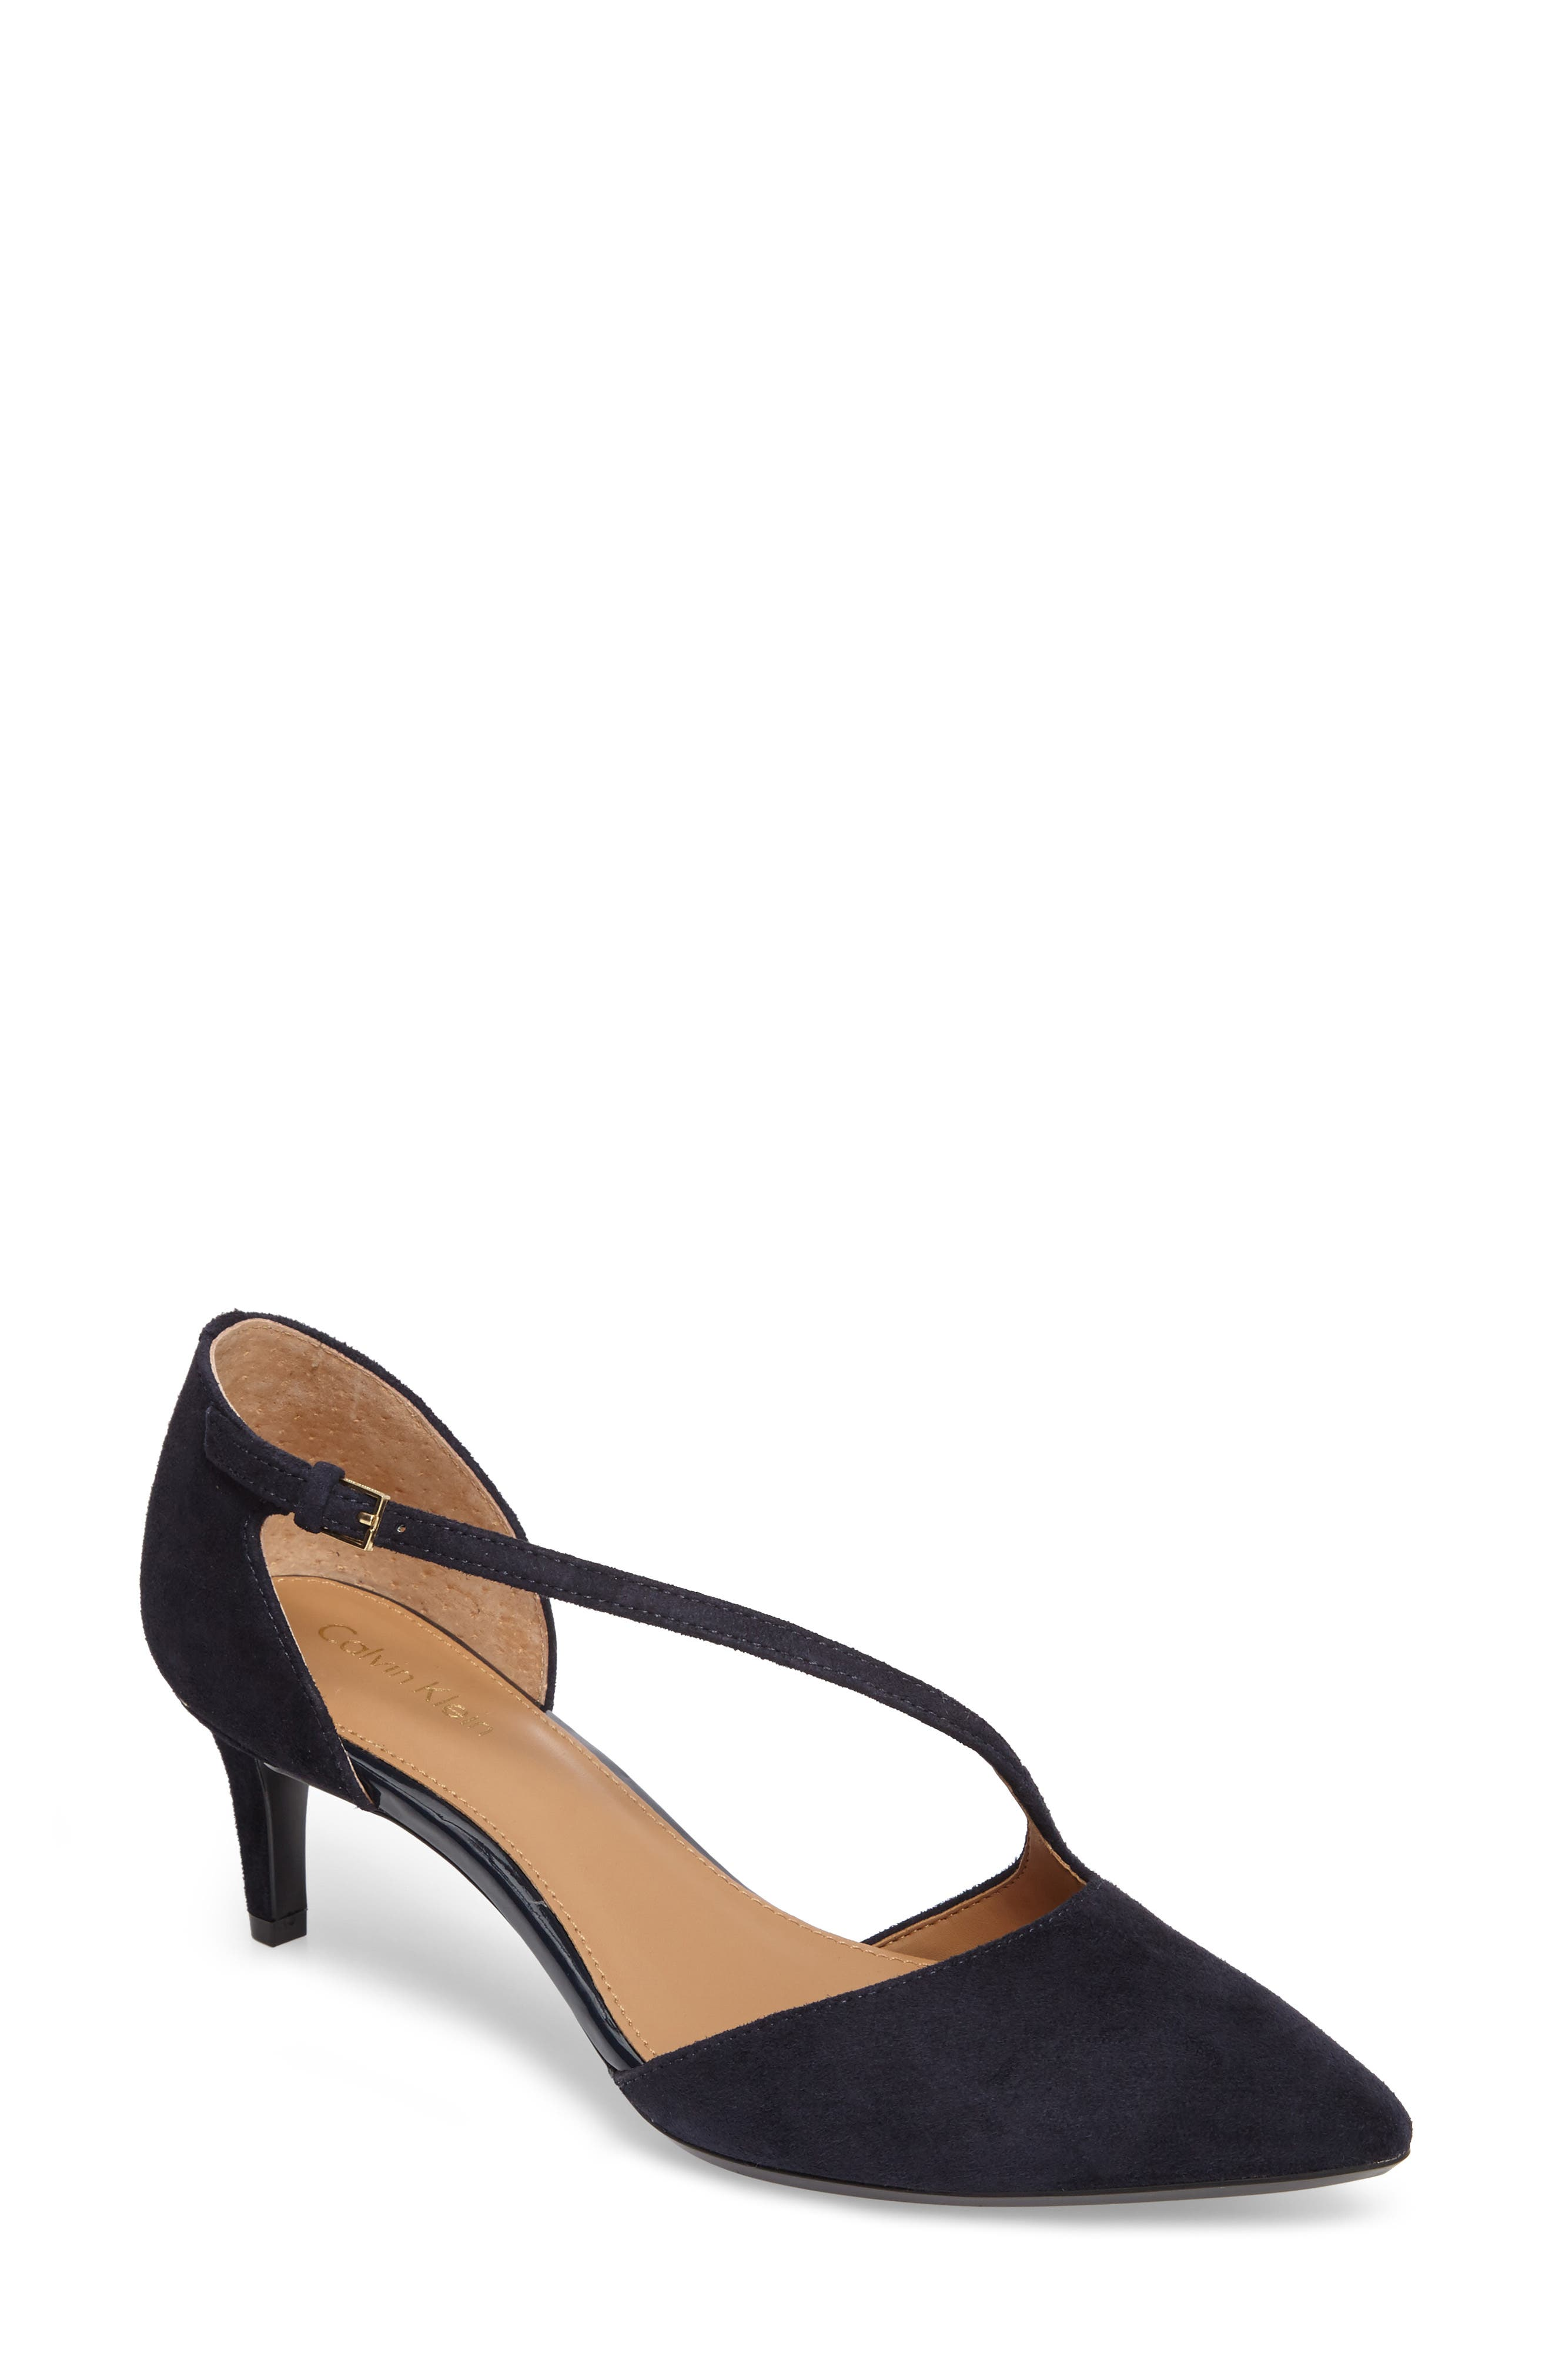 Main Image - Calvin Klein Page Pointy Toe Pump (Women)